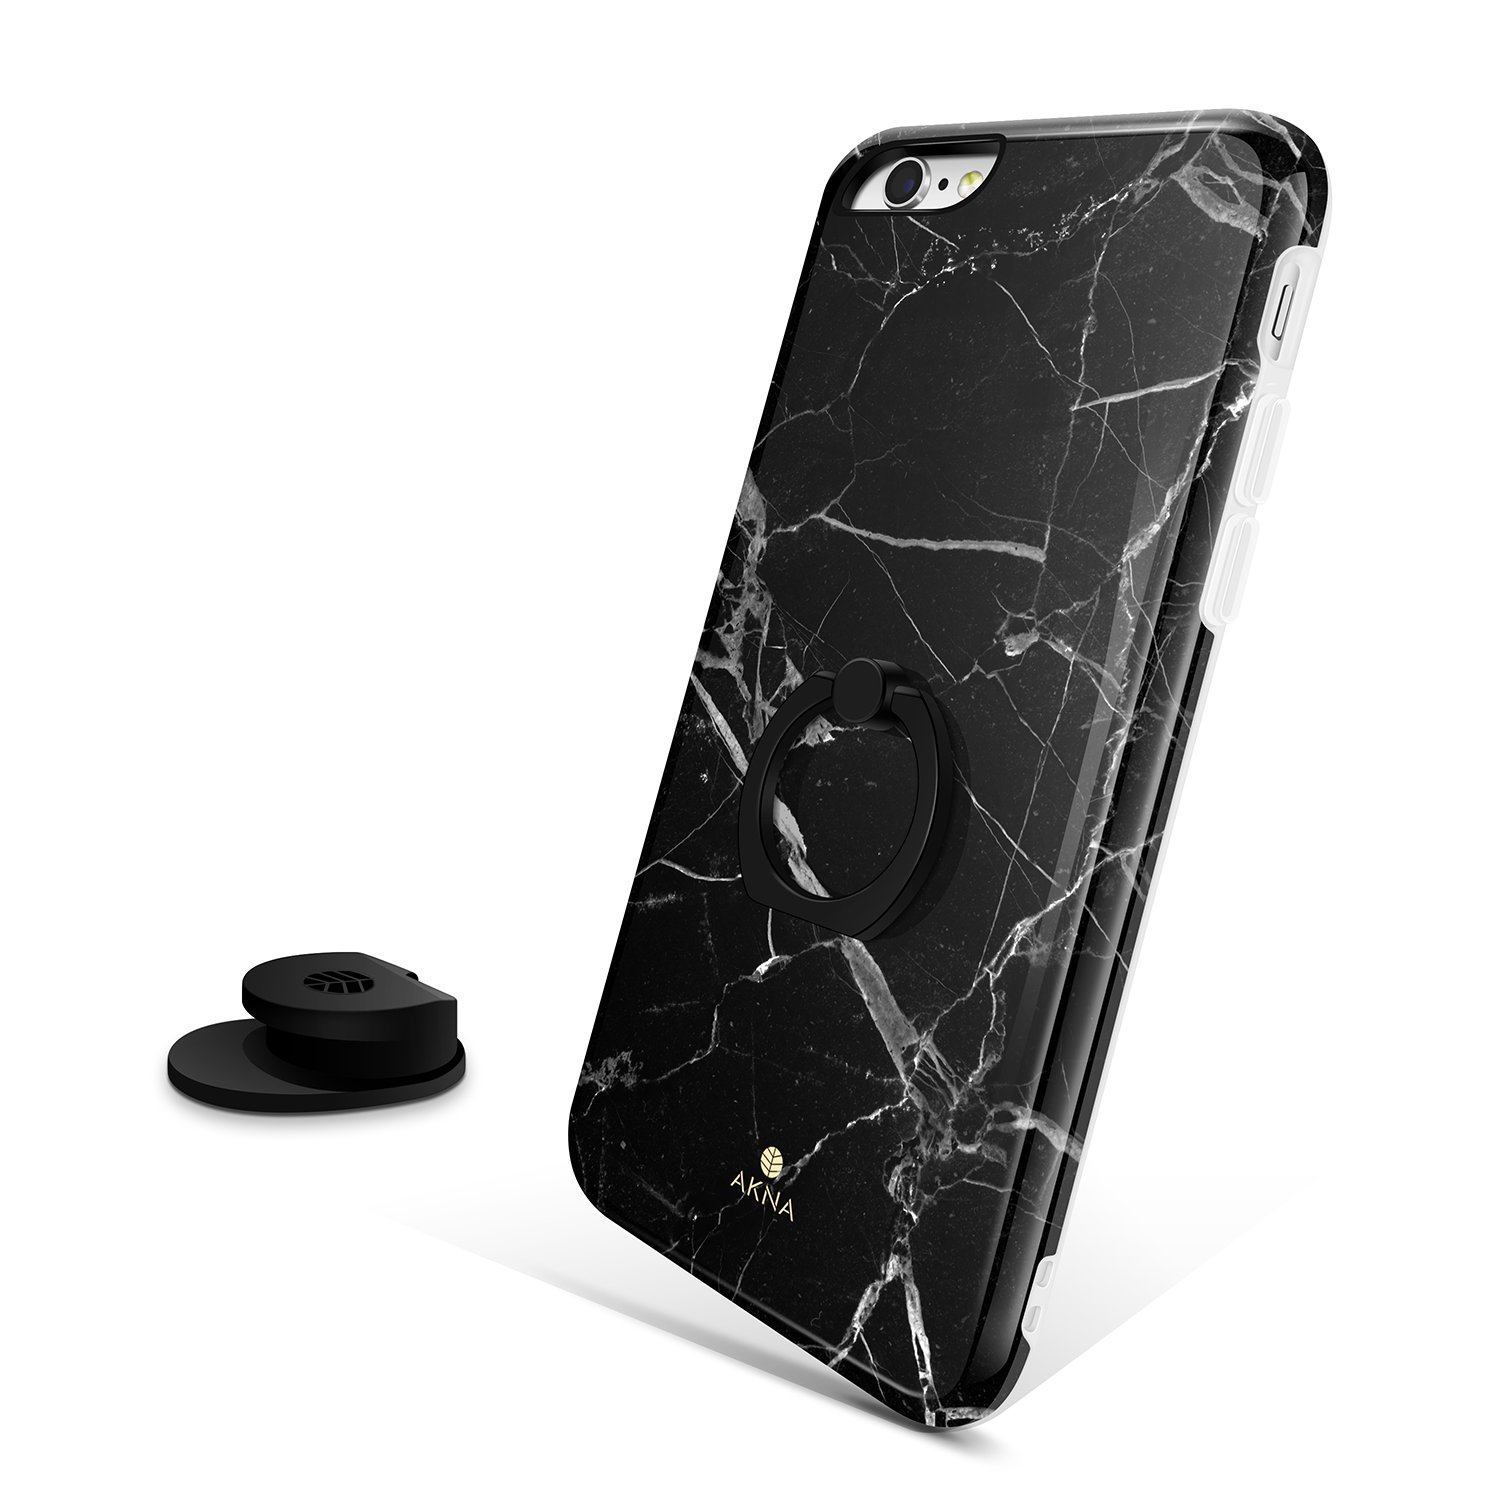 920-C.A iPhone 6//6s case Marble Akna Charming Series High Impact Flexible Silicon Case for Both iPhone 6 /& iPhone 6s